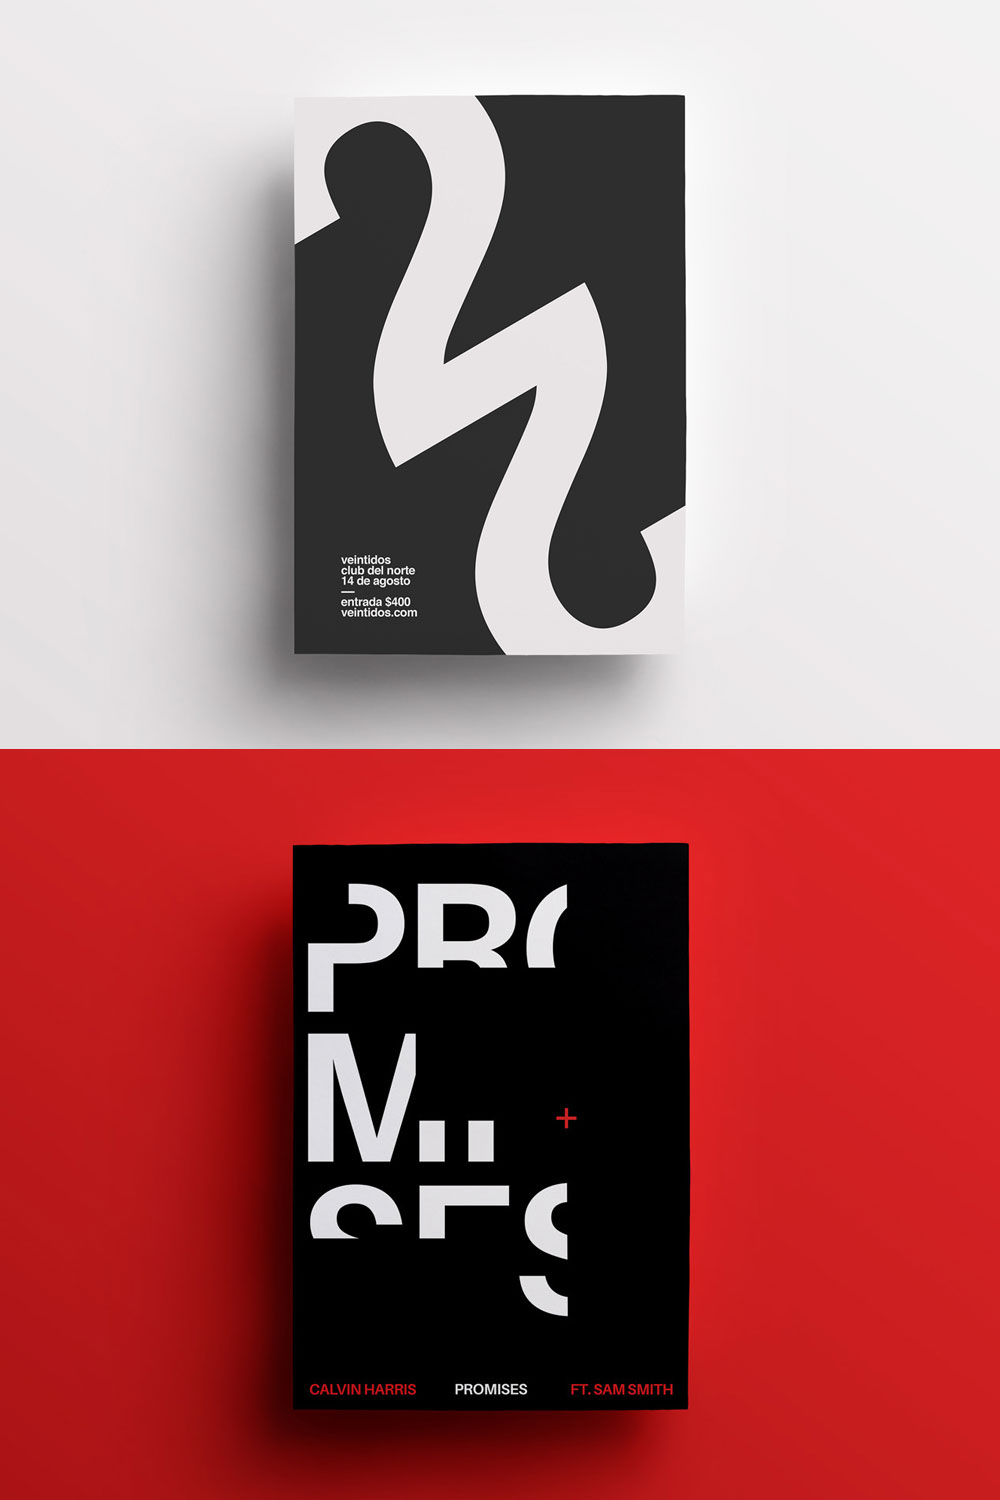 Typographic Posters Collection by Mauri Davida